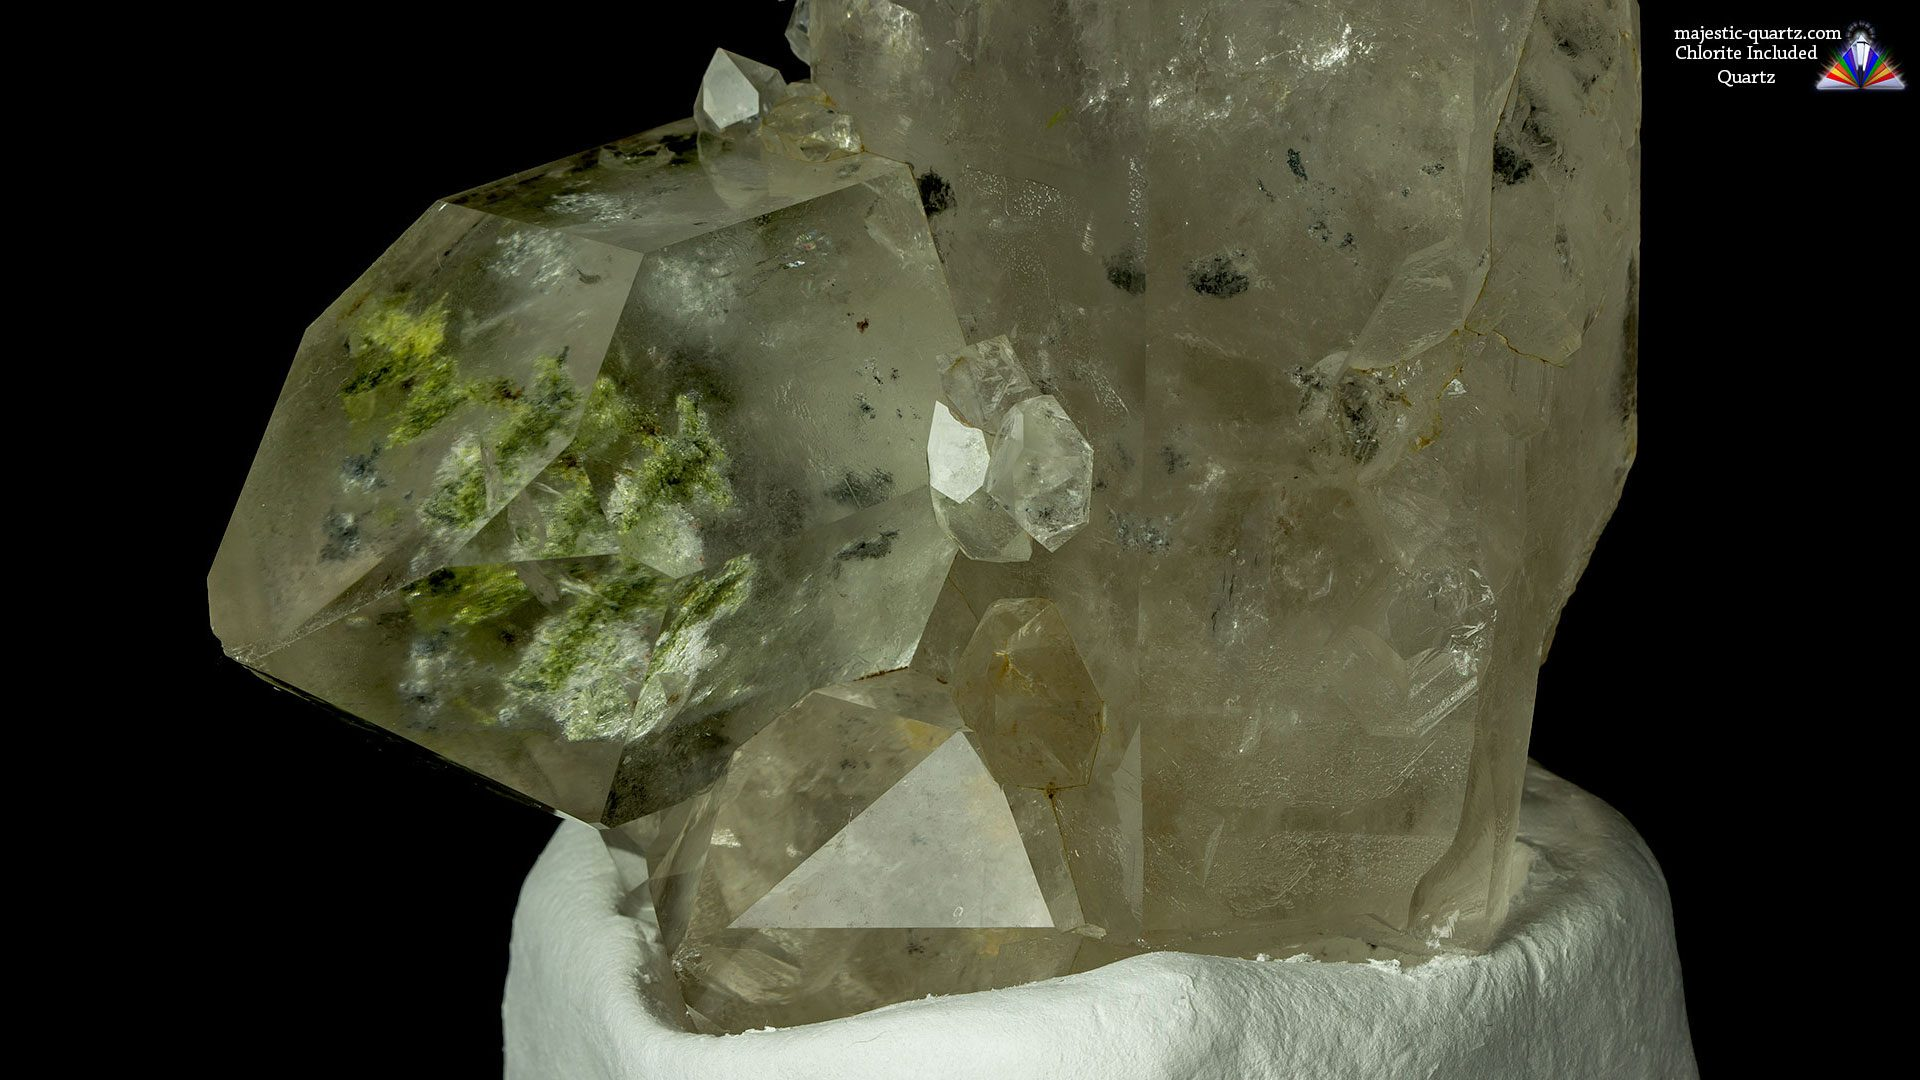 Chlorite Included Quartz - Photograph by Anthony Bradford